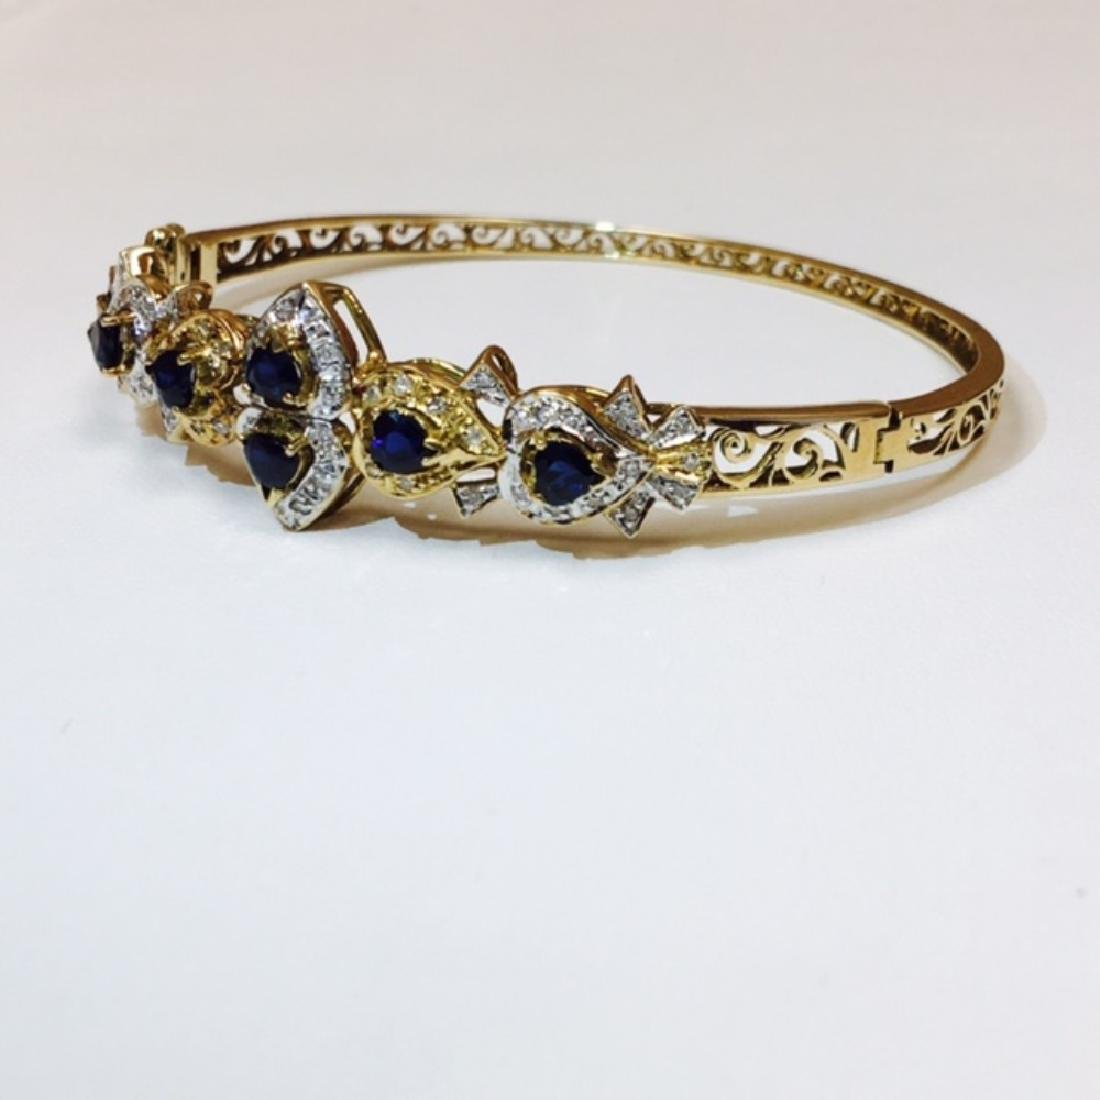 14k Gold Diamond & Blue Sapphire Bracelet / BANGLE - 6